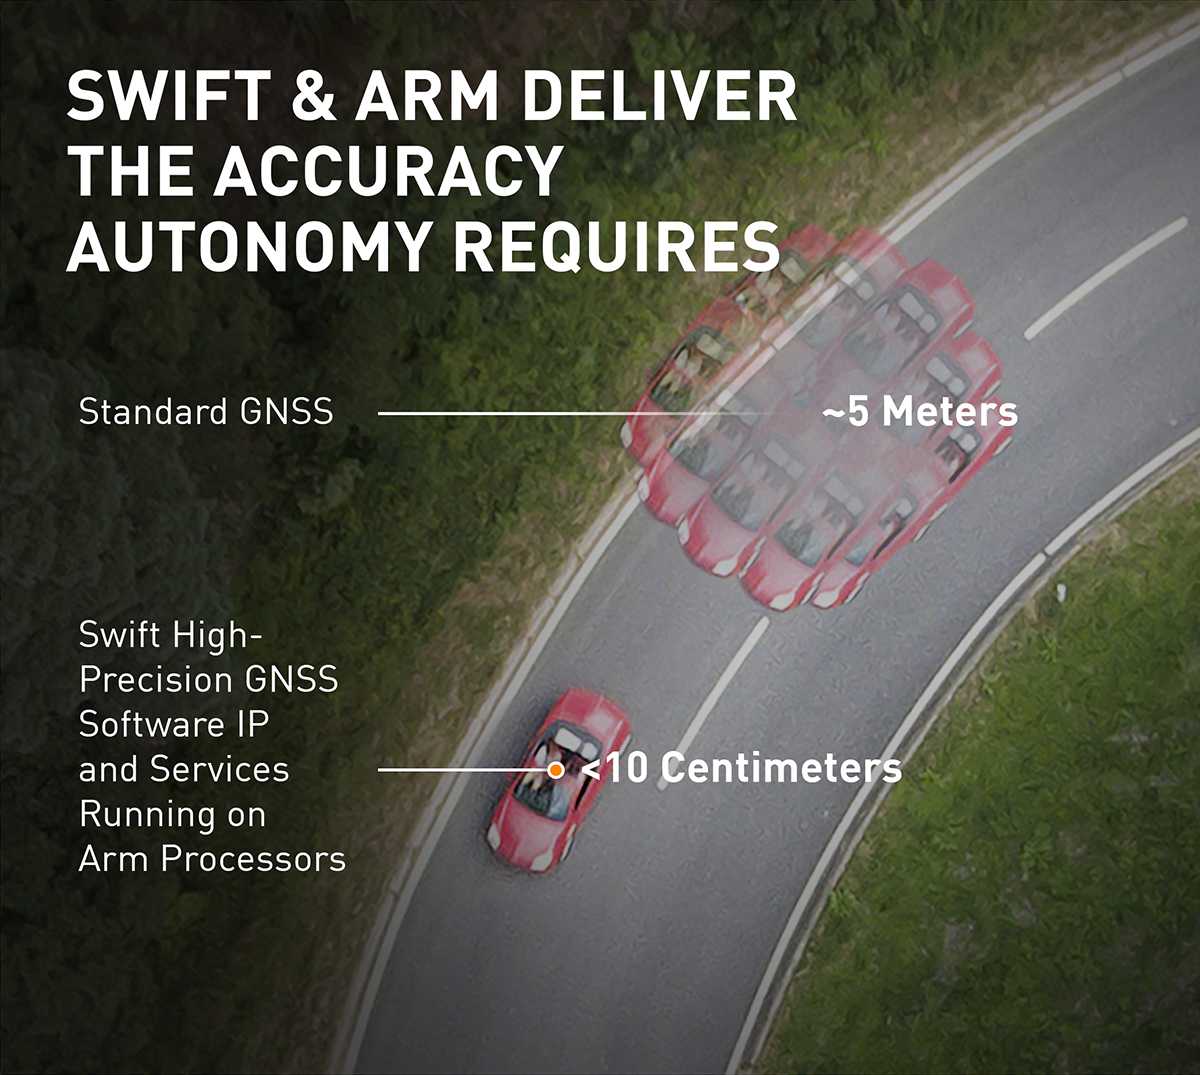 The Swift/Arm partnership means Arm will offer Swift Navigation's high-integrity, high-accuracy GNSS positioning solutions as an option on Arm-based platforms to developers of autonomous and connected vehicles. (Image: Swift Navigation)